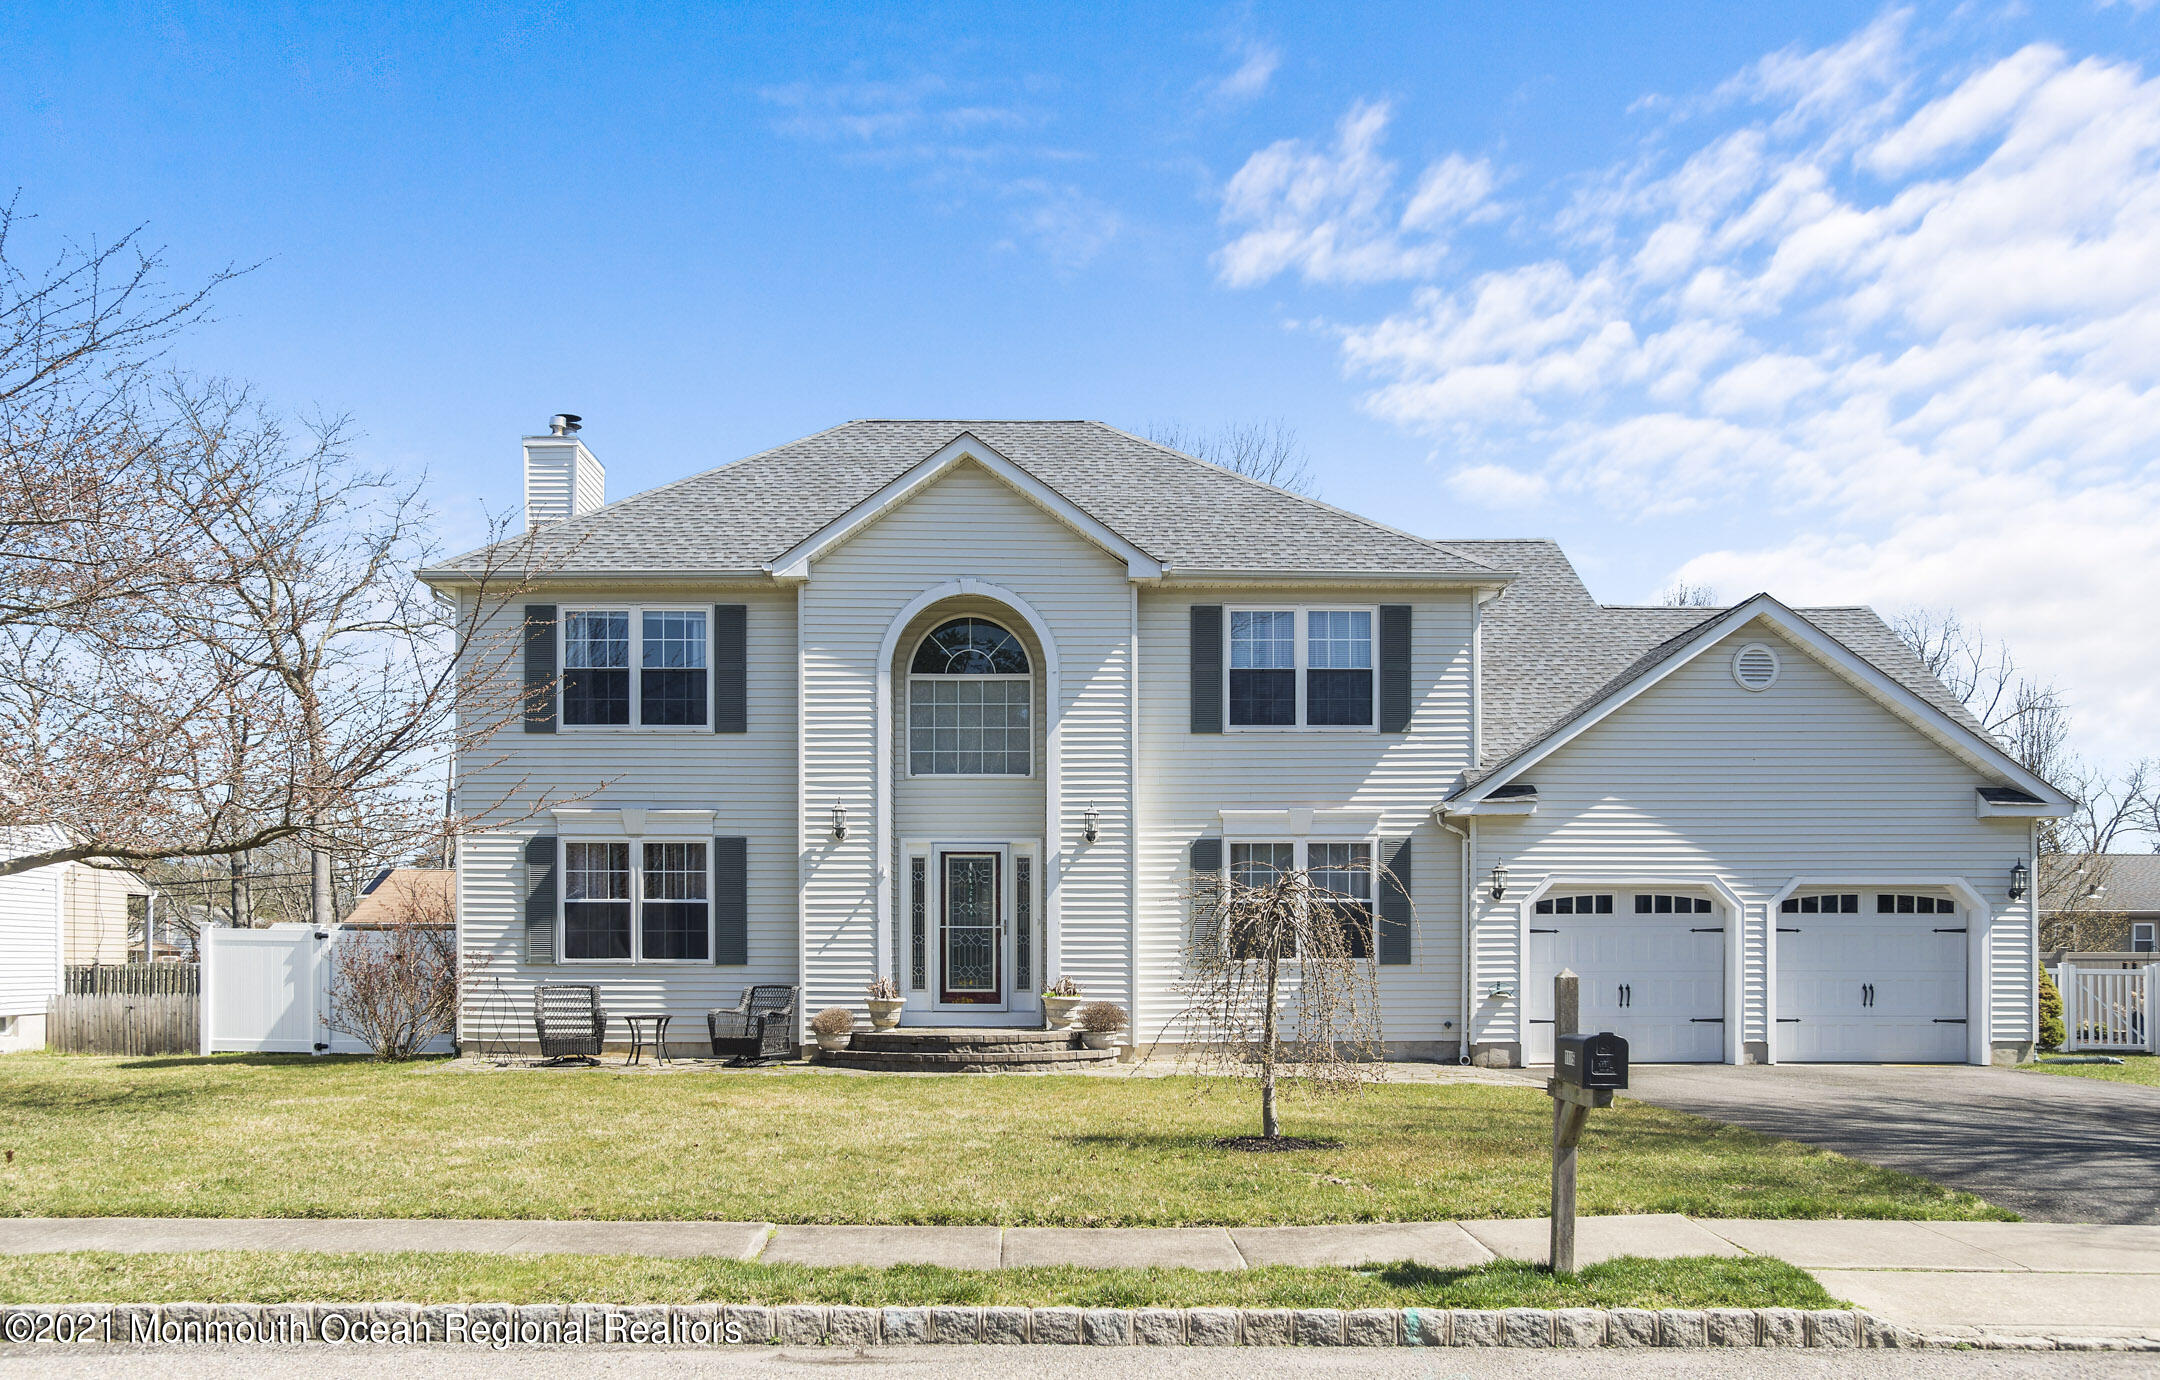 1115 Citta Court, Toms River, New Jersey 08753, 4 Bedrooms Bedrooms, ,3 BathroomsBathrooms,Single Family,For Sale,1115 Citta Court,2,22109967